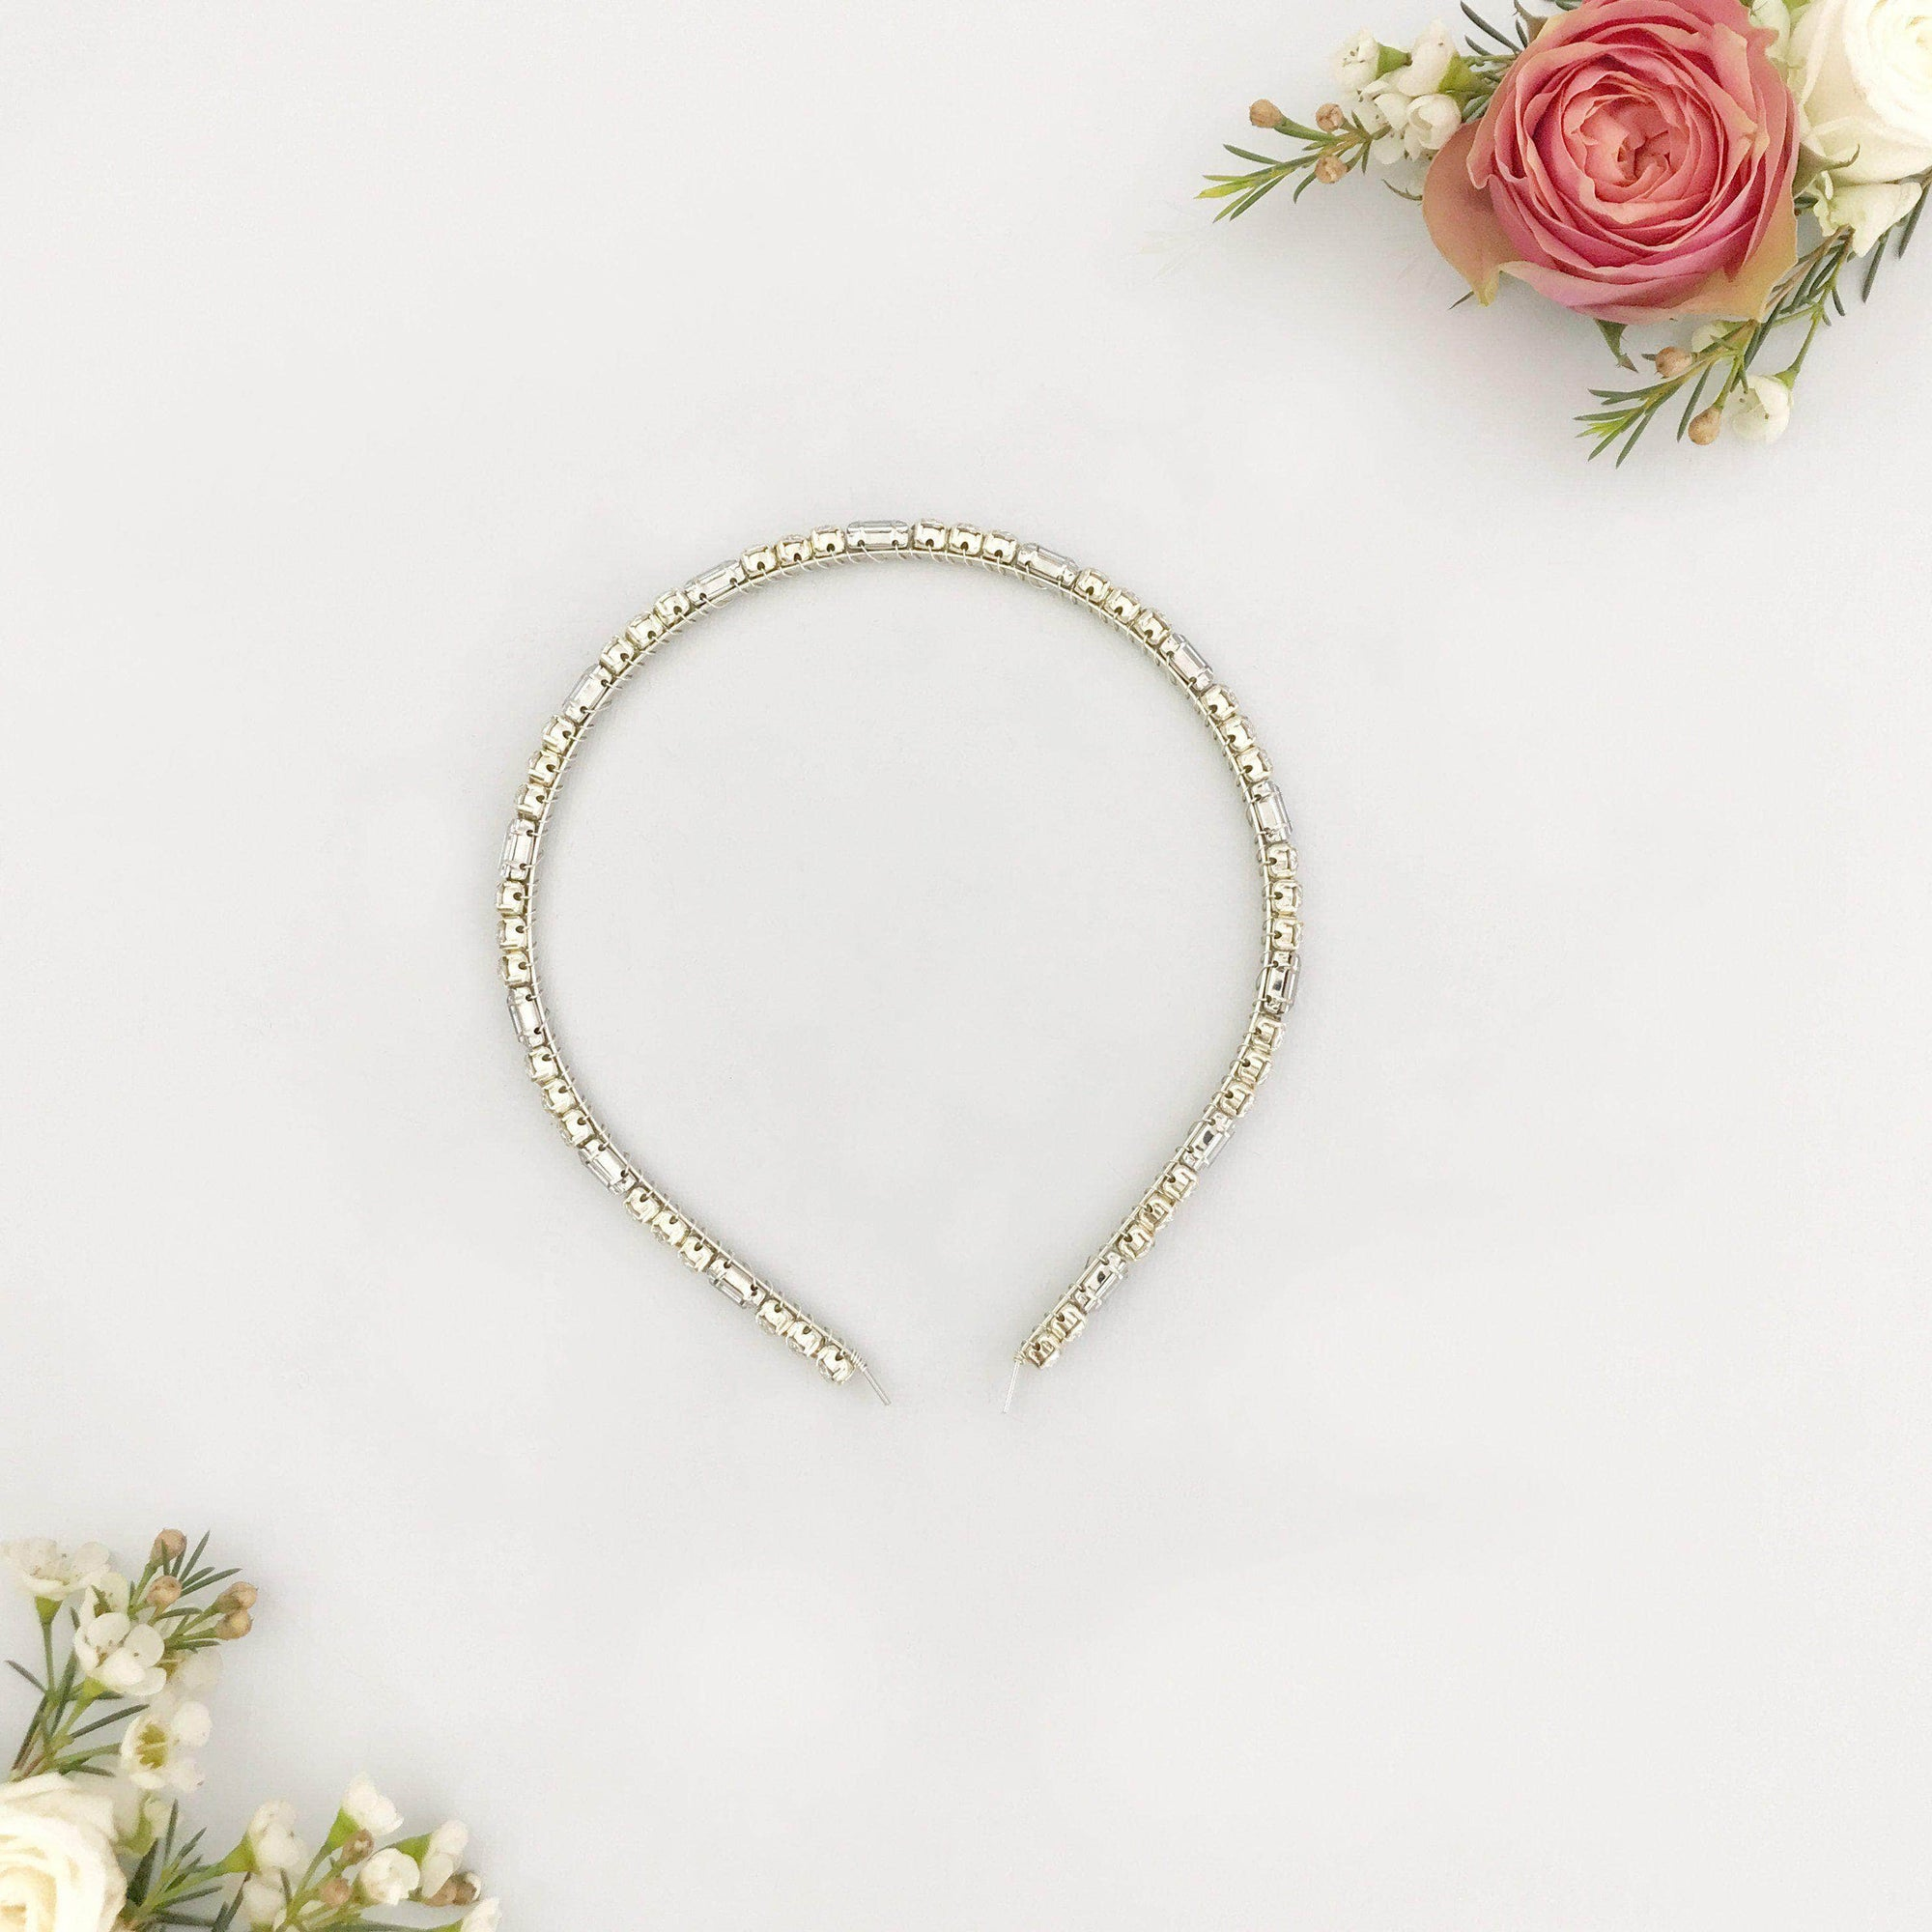 Wedding Headband Silver Deco wedding head band - 'Ruby'